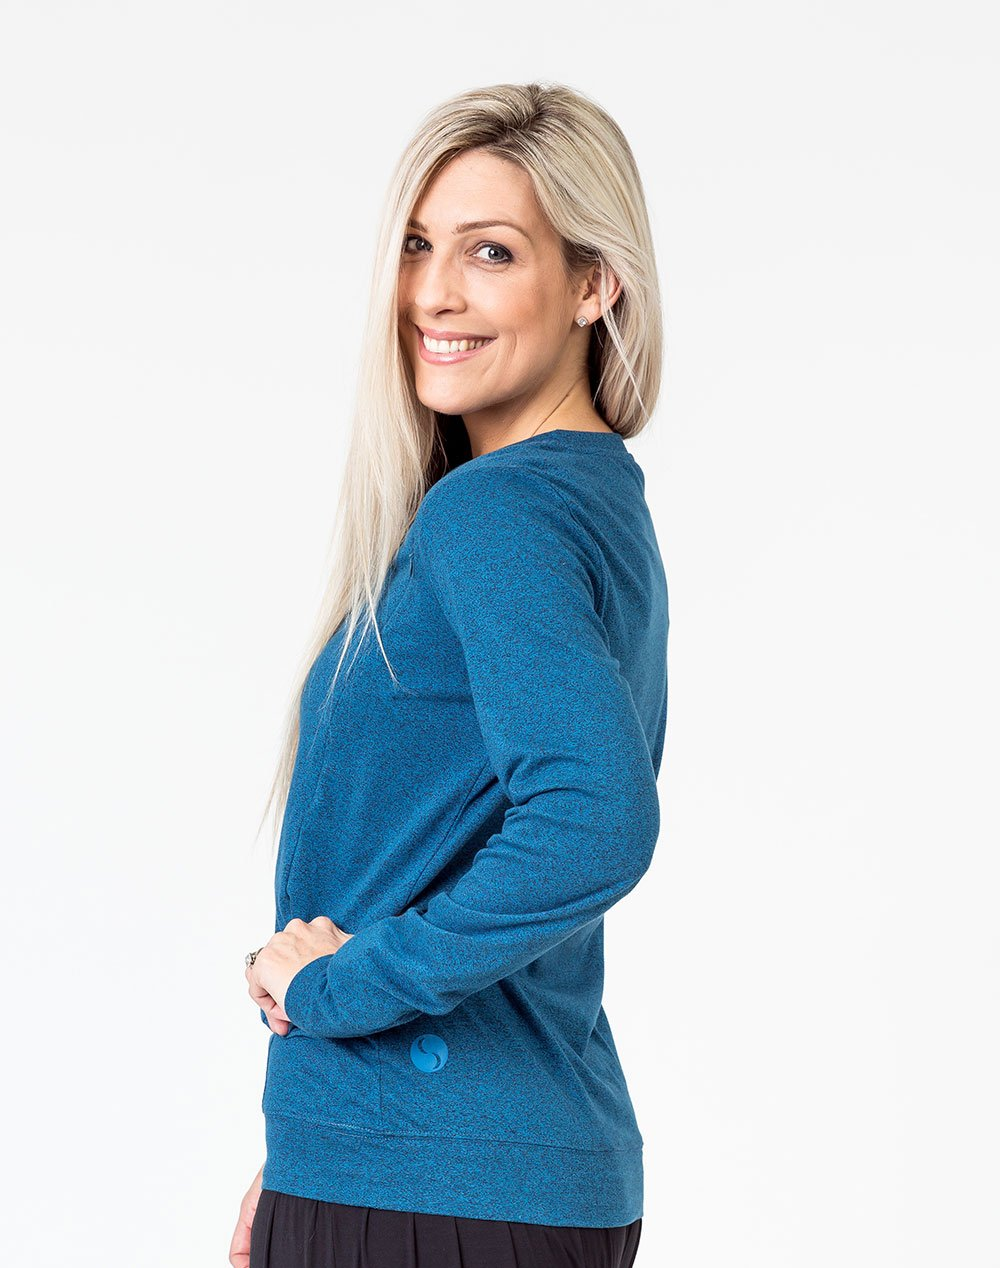 side view of a mum wearing a navy maternity top with long sleeves and invisible zips